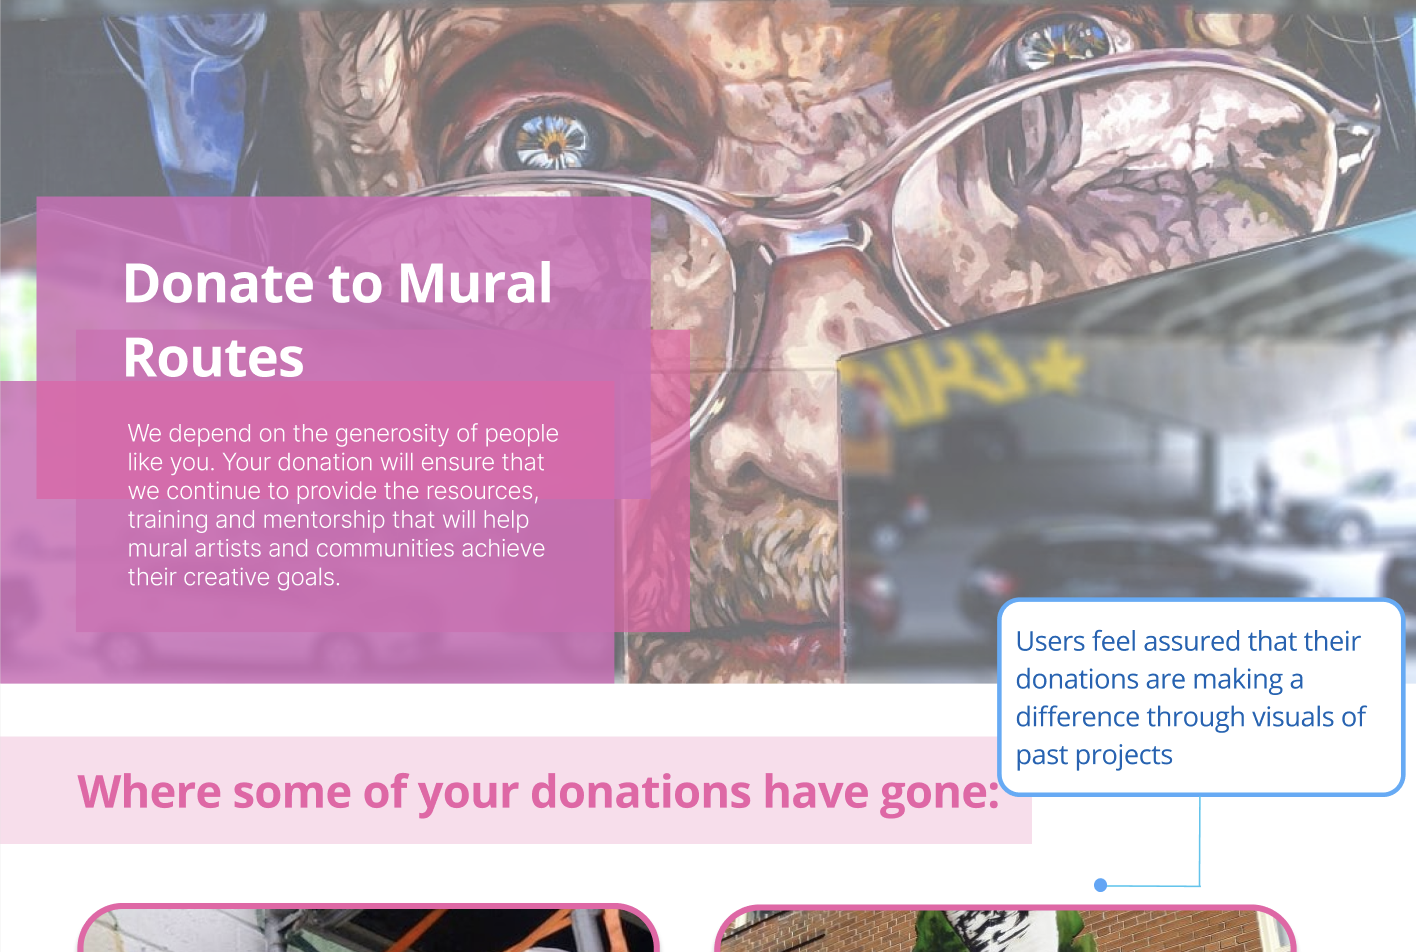 Recommended Donation Page: Includes more motivation with images and information